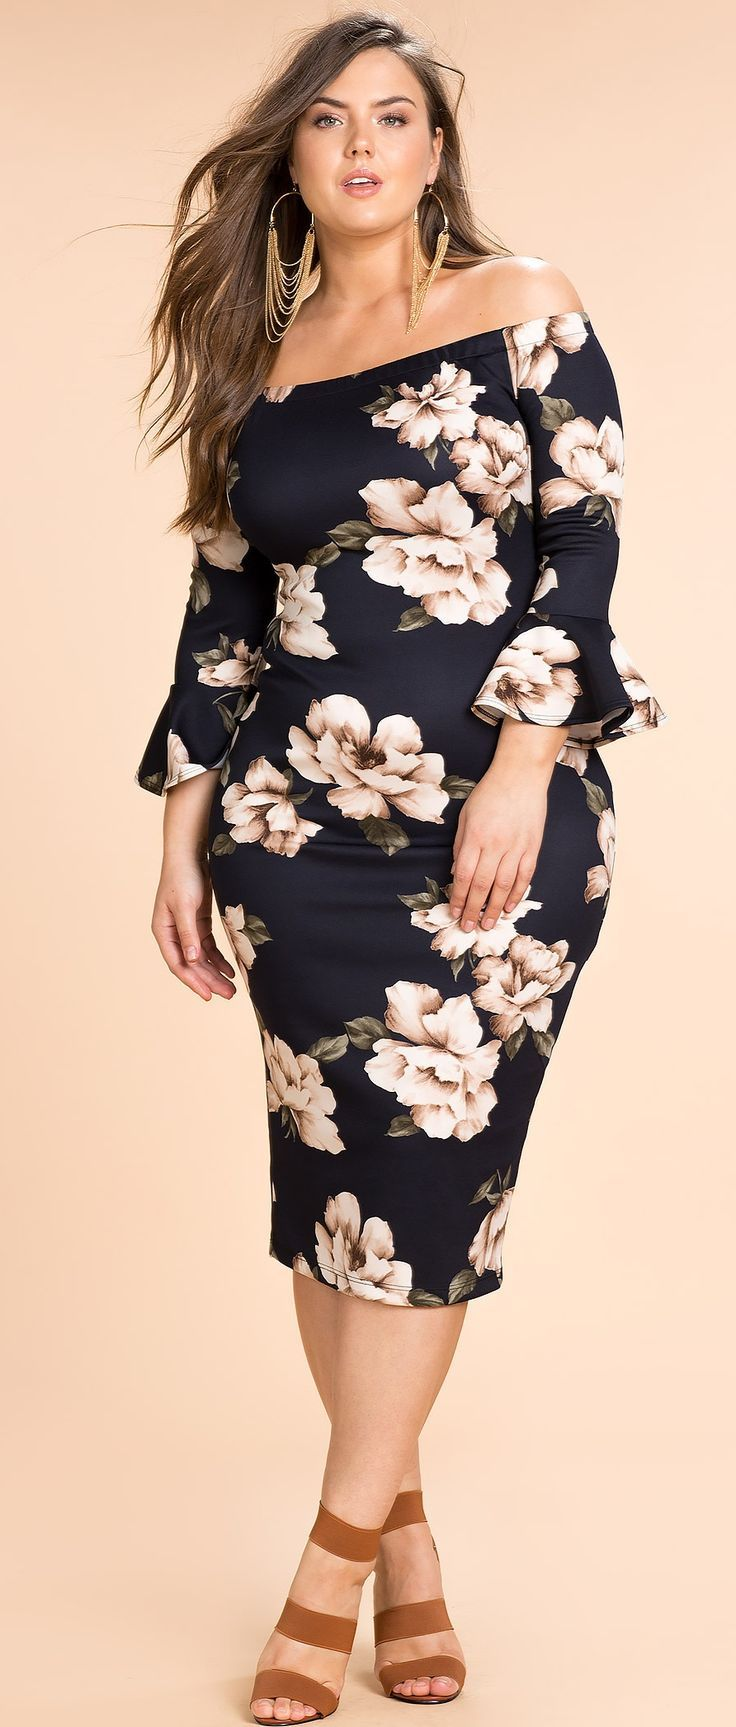 Plus Size Off Shoulder Dress Women Big Size Clothes - http://amzn.to/2ix7dK5